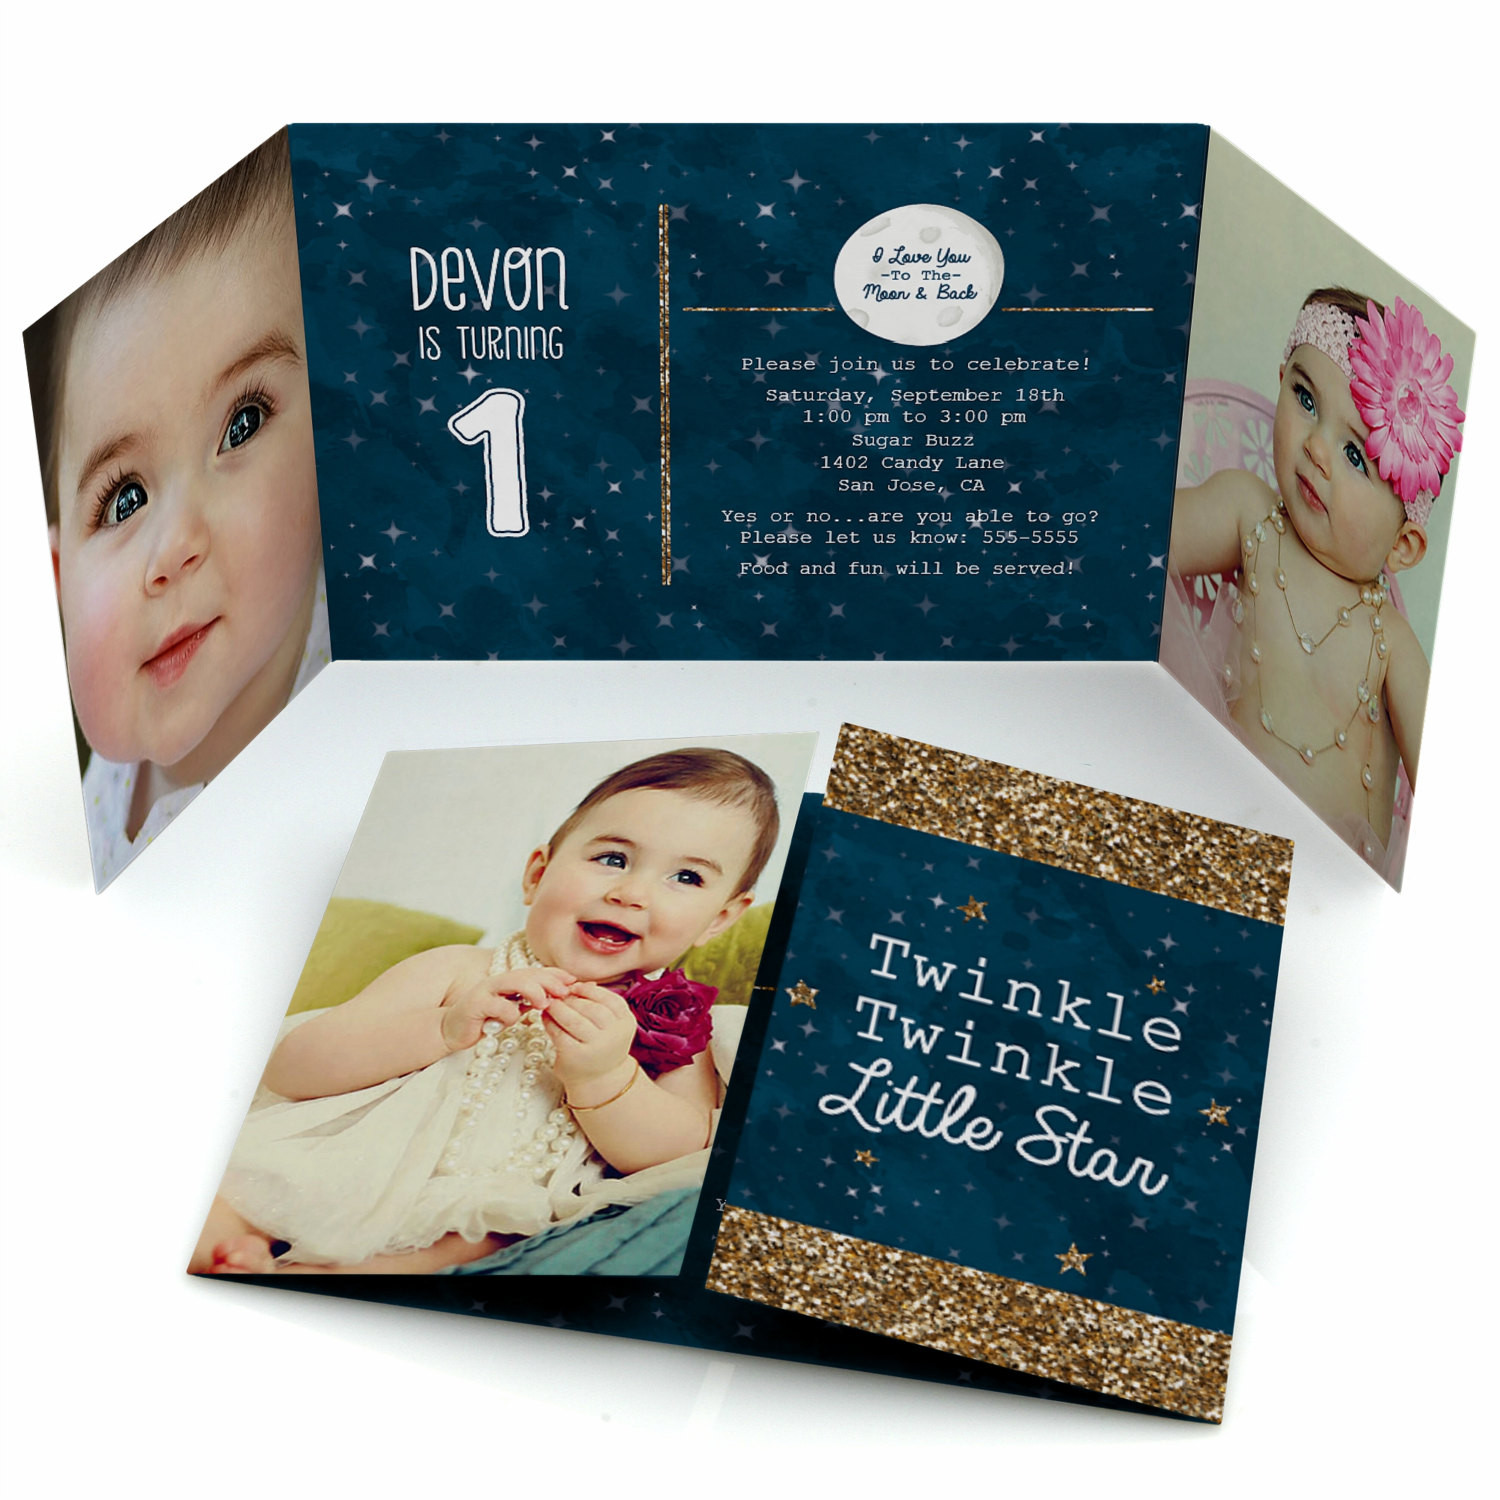 Best ideas about Twinkle Twinkle Little Star 1st Birthday Invitations . Save or Pin Twinkle Twinkle Little Star 1st Birthday Party Invitation Now.